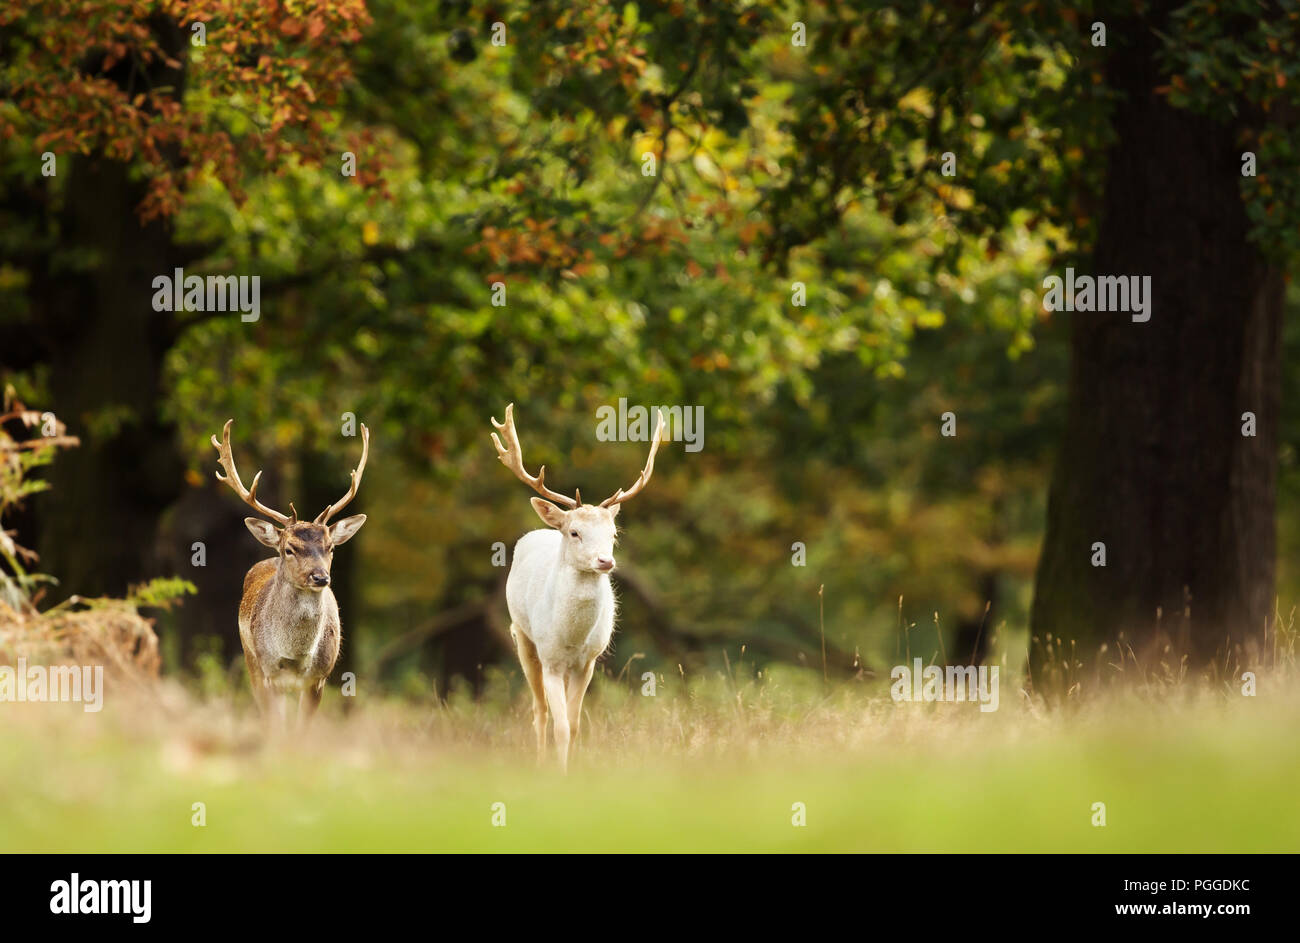 Two Fallow deer (Dama dama) walking in the forest in autumn, UK. - Stock Image